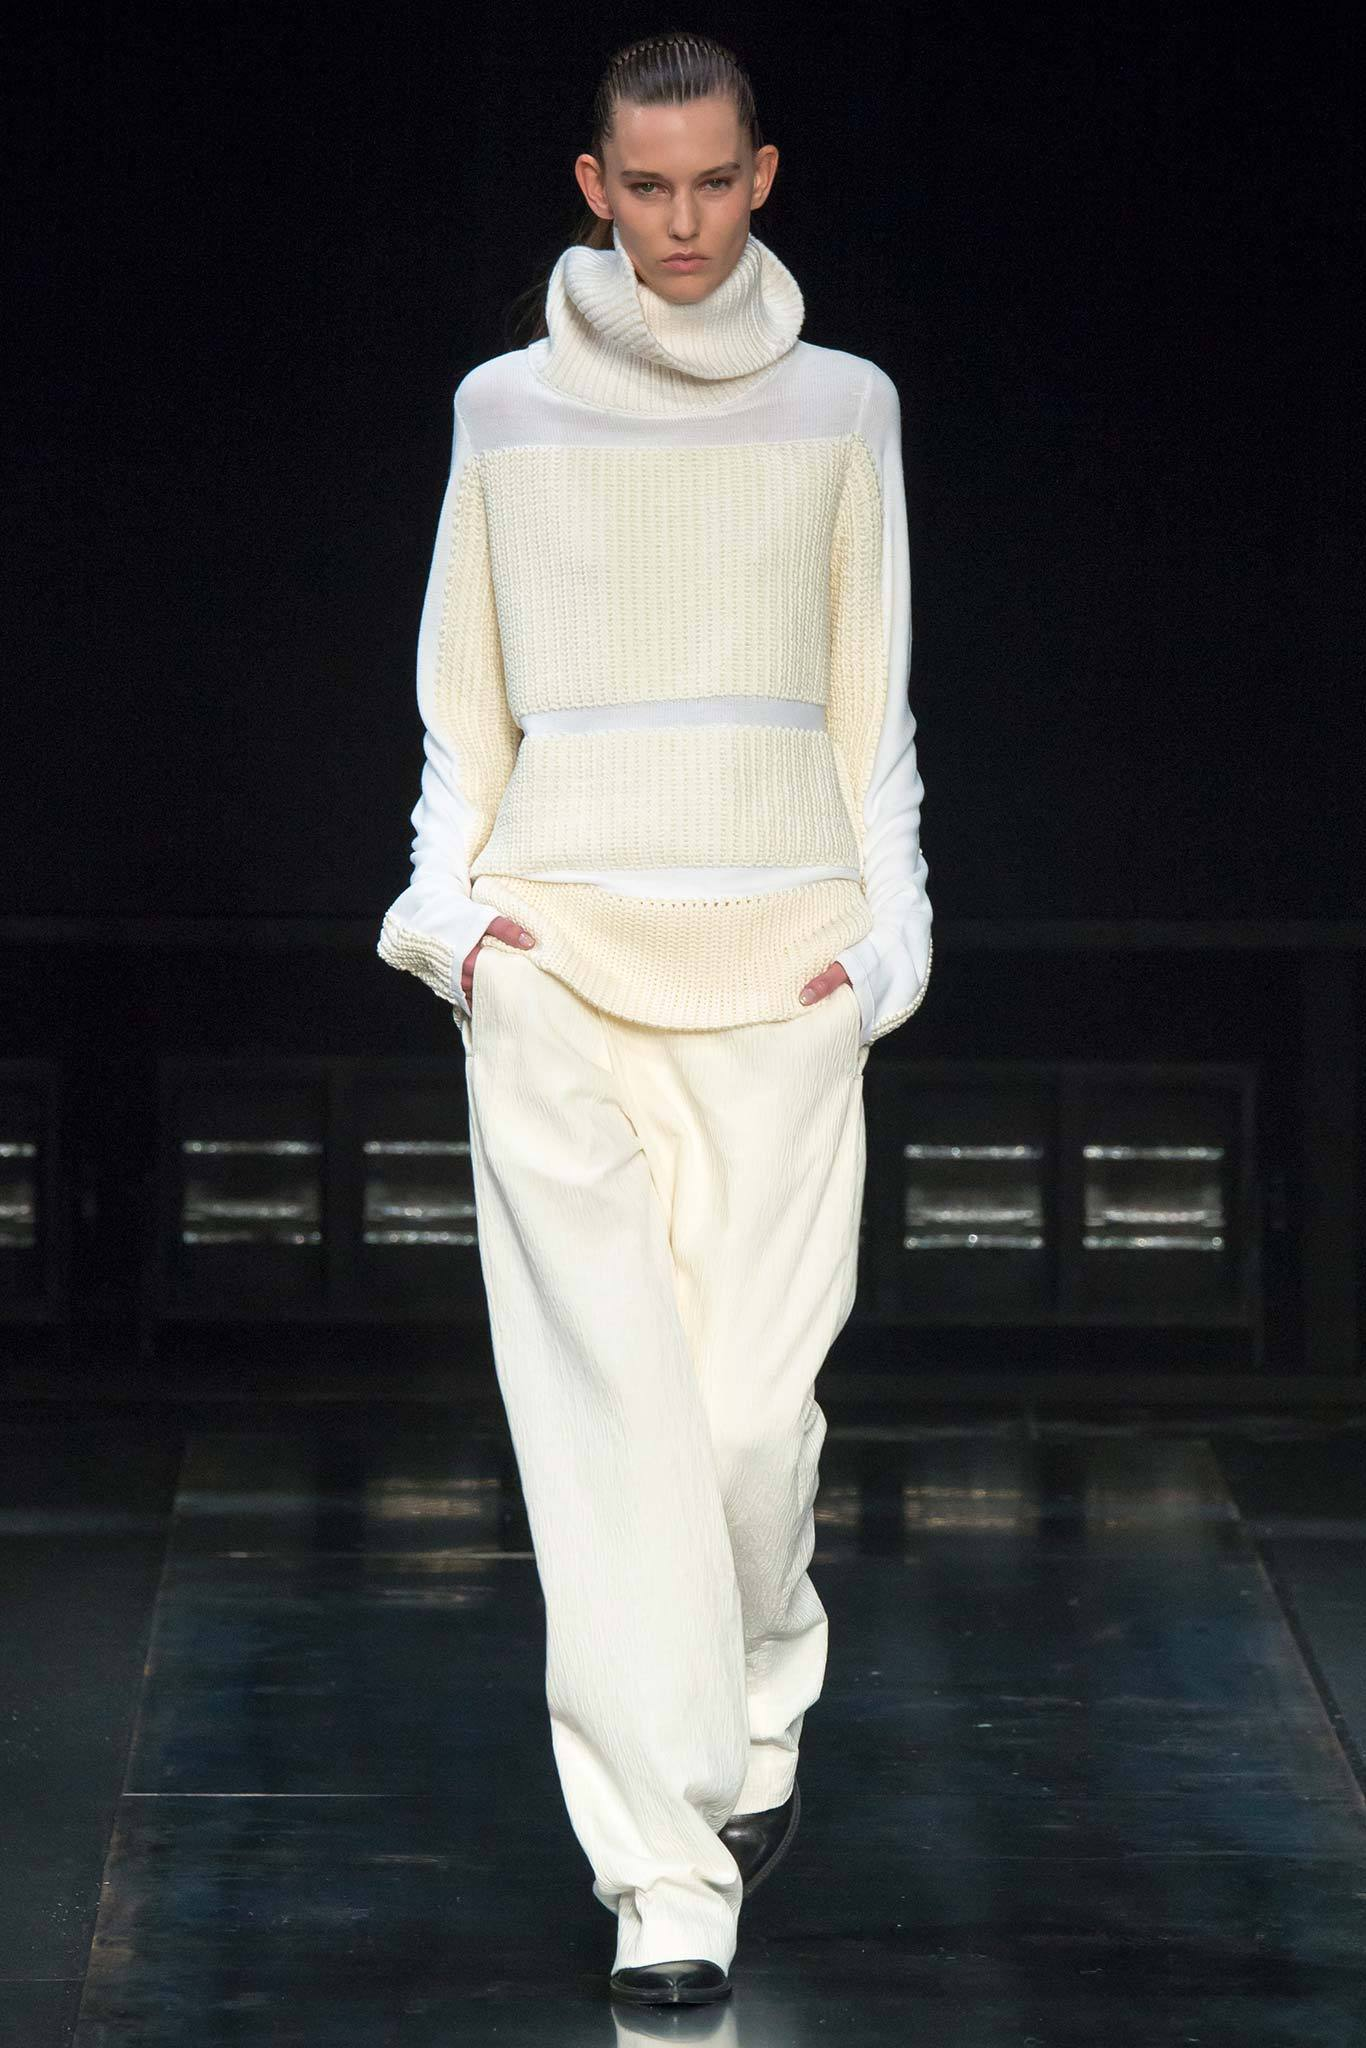 StyleAndMinimalism | Collection Best Bits | What To Wear From AW14 | Helmut Lang AW14 | Oversized Cream Roll Neck Jumper, Wide Loose-Fit Trousers